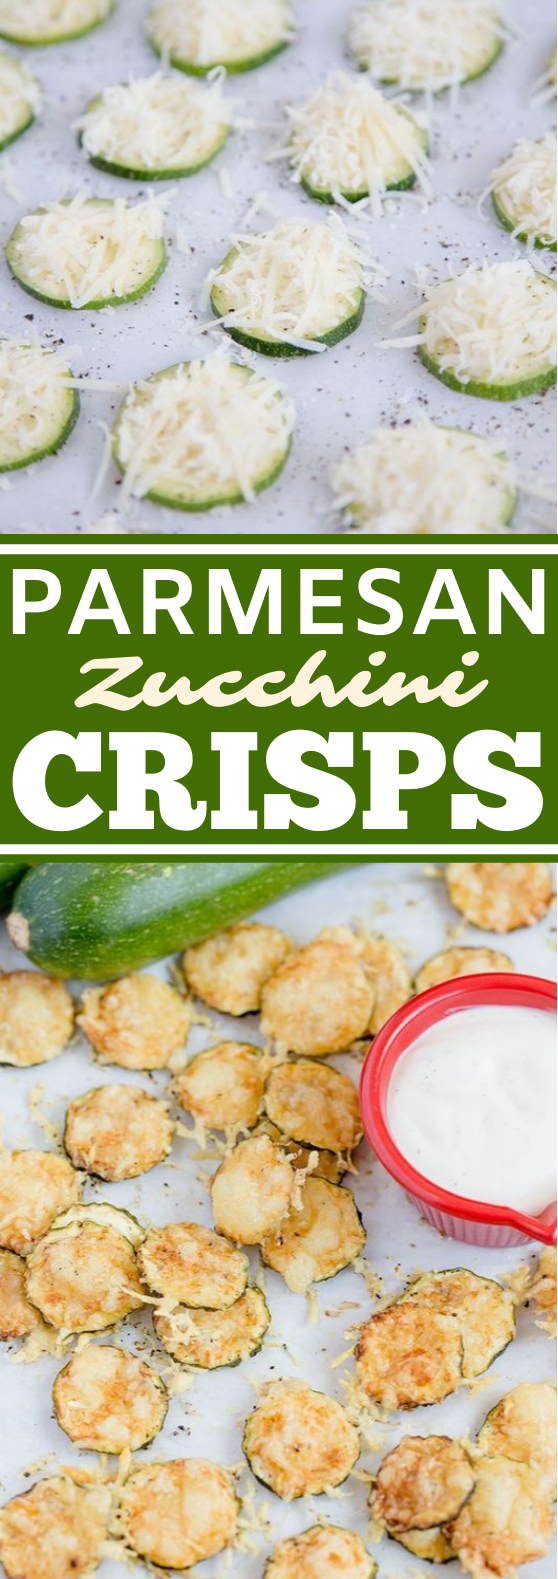 Parmesan Zucchini Crisps #healthy #snacks #easy #lowcarb #glutenfree